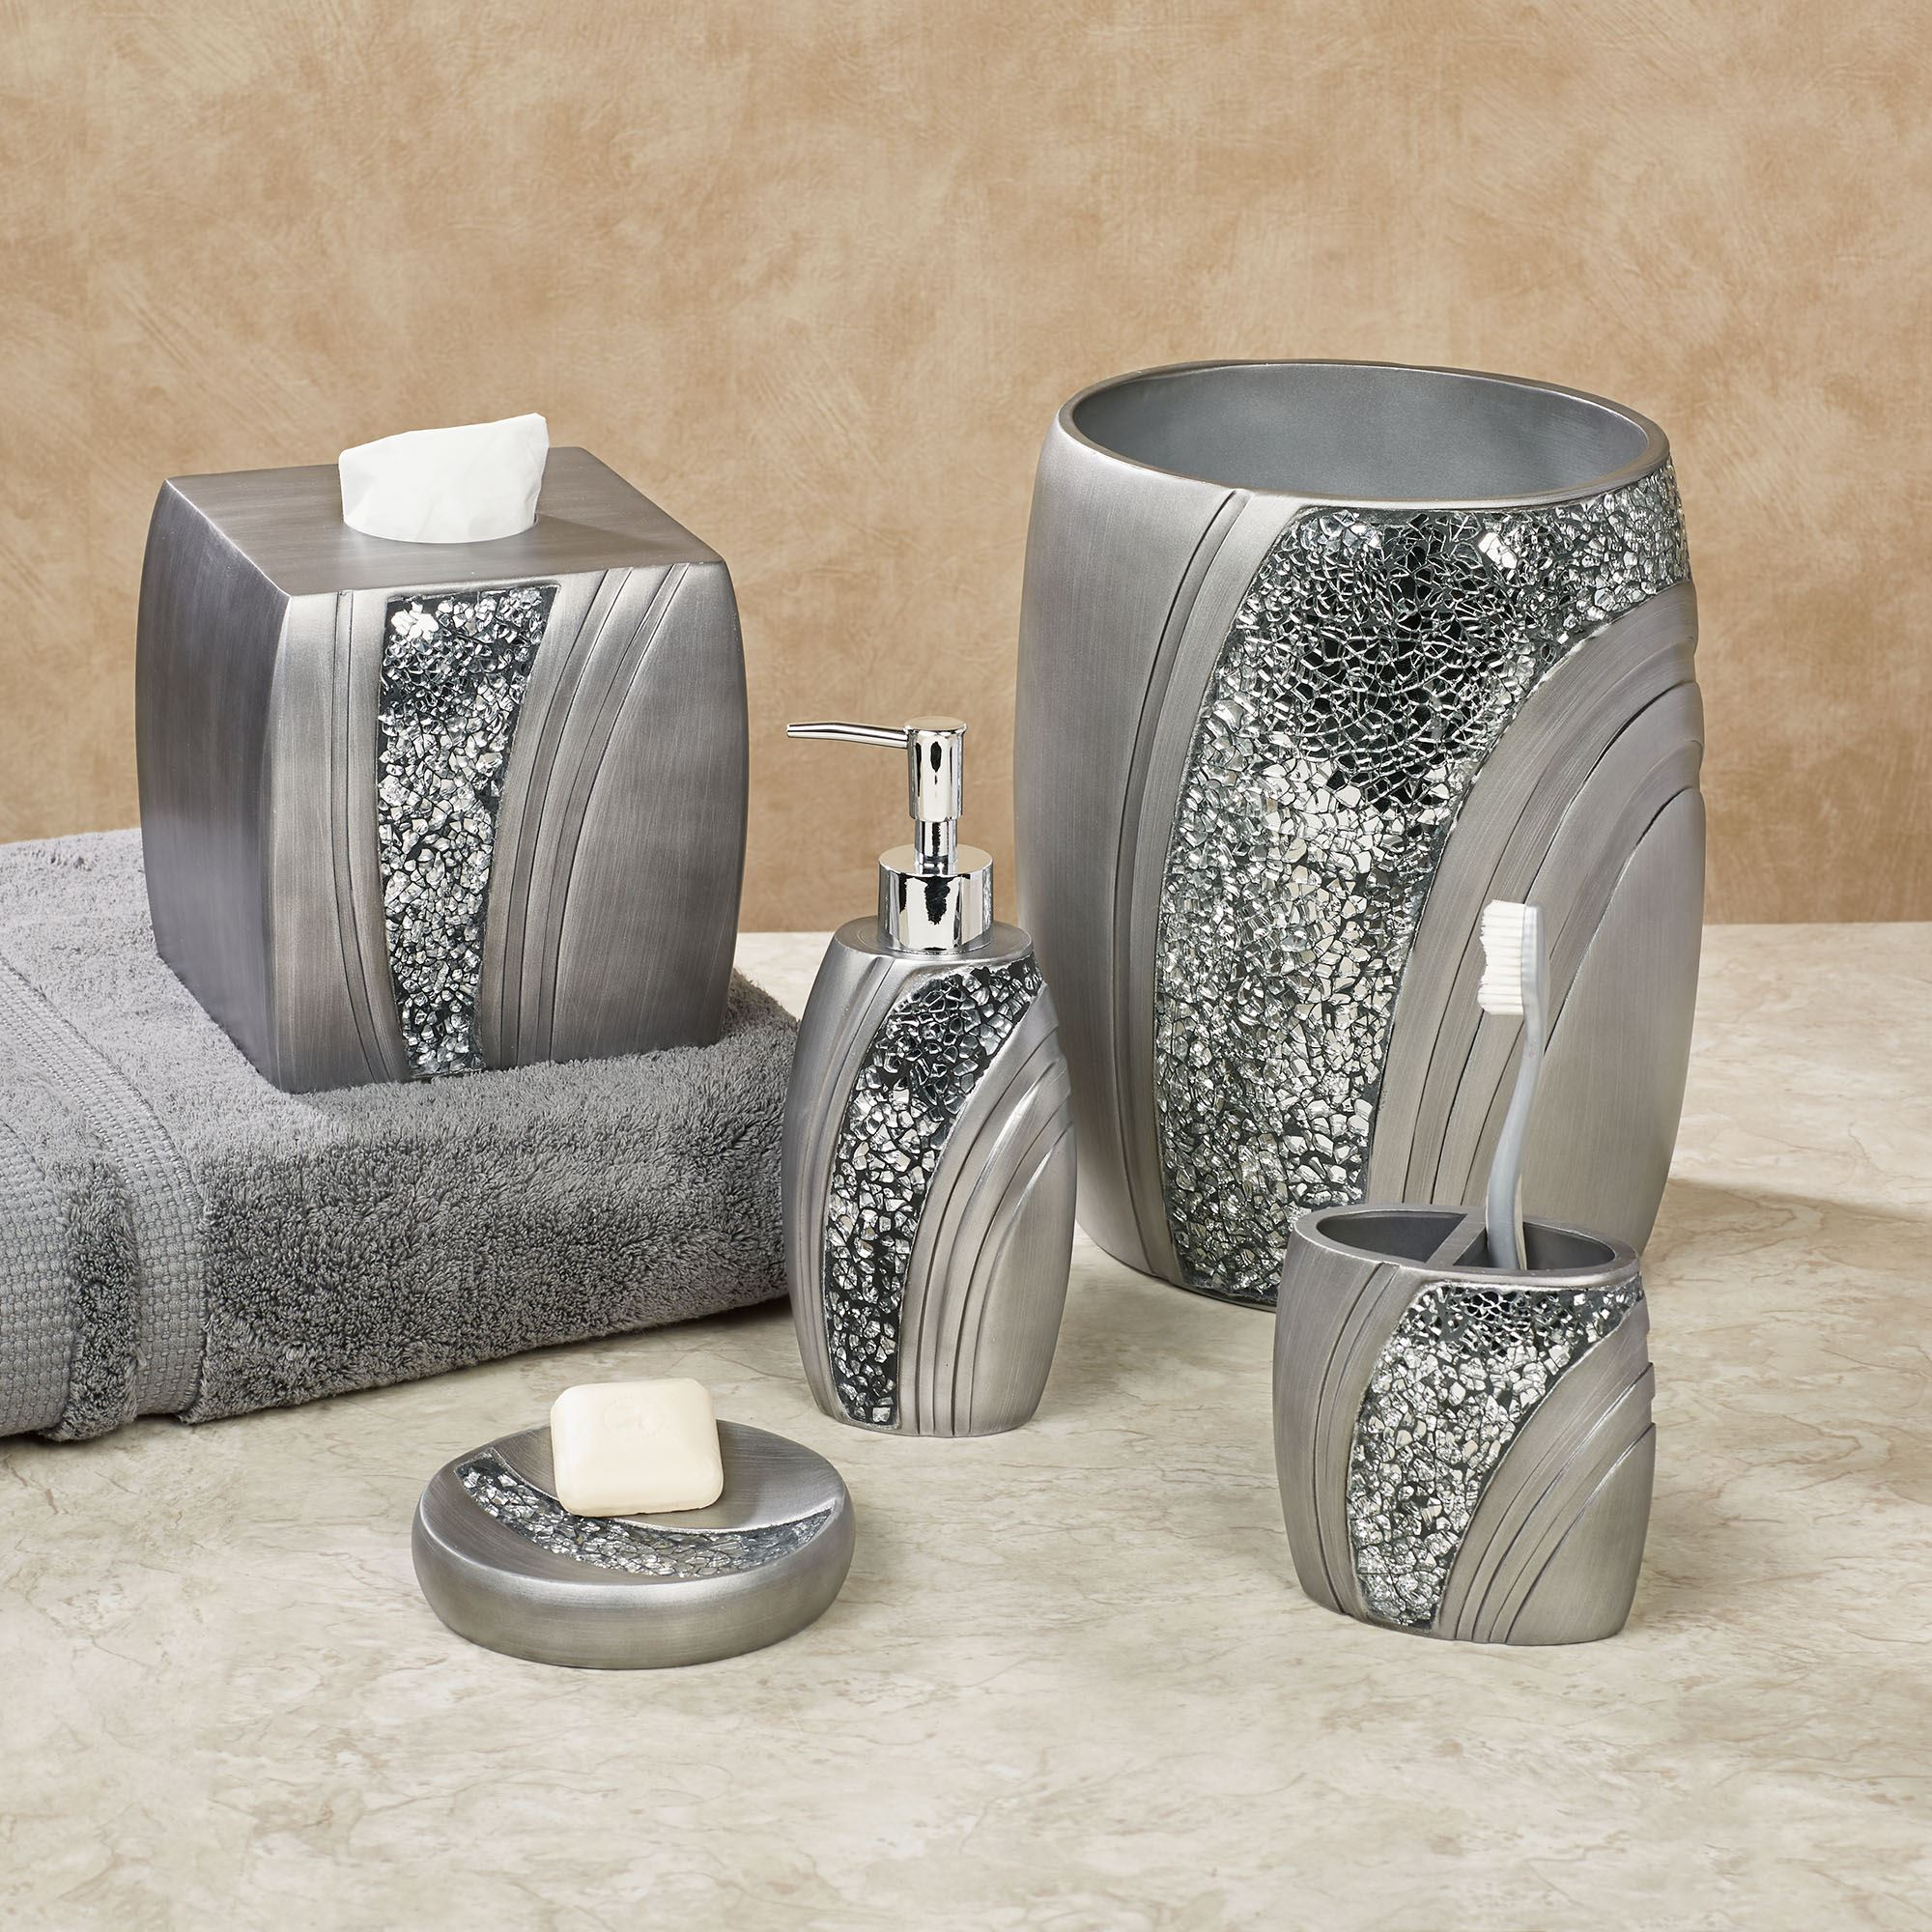 Brilliance mosaic silver gray bath accessories for Bath shower accessories